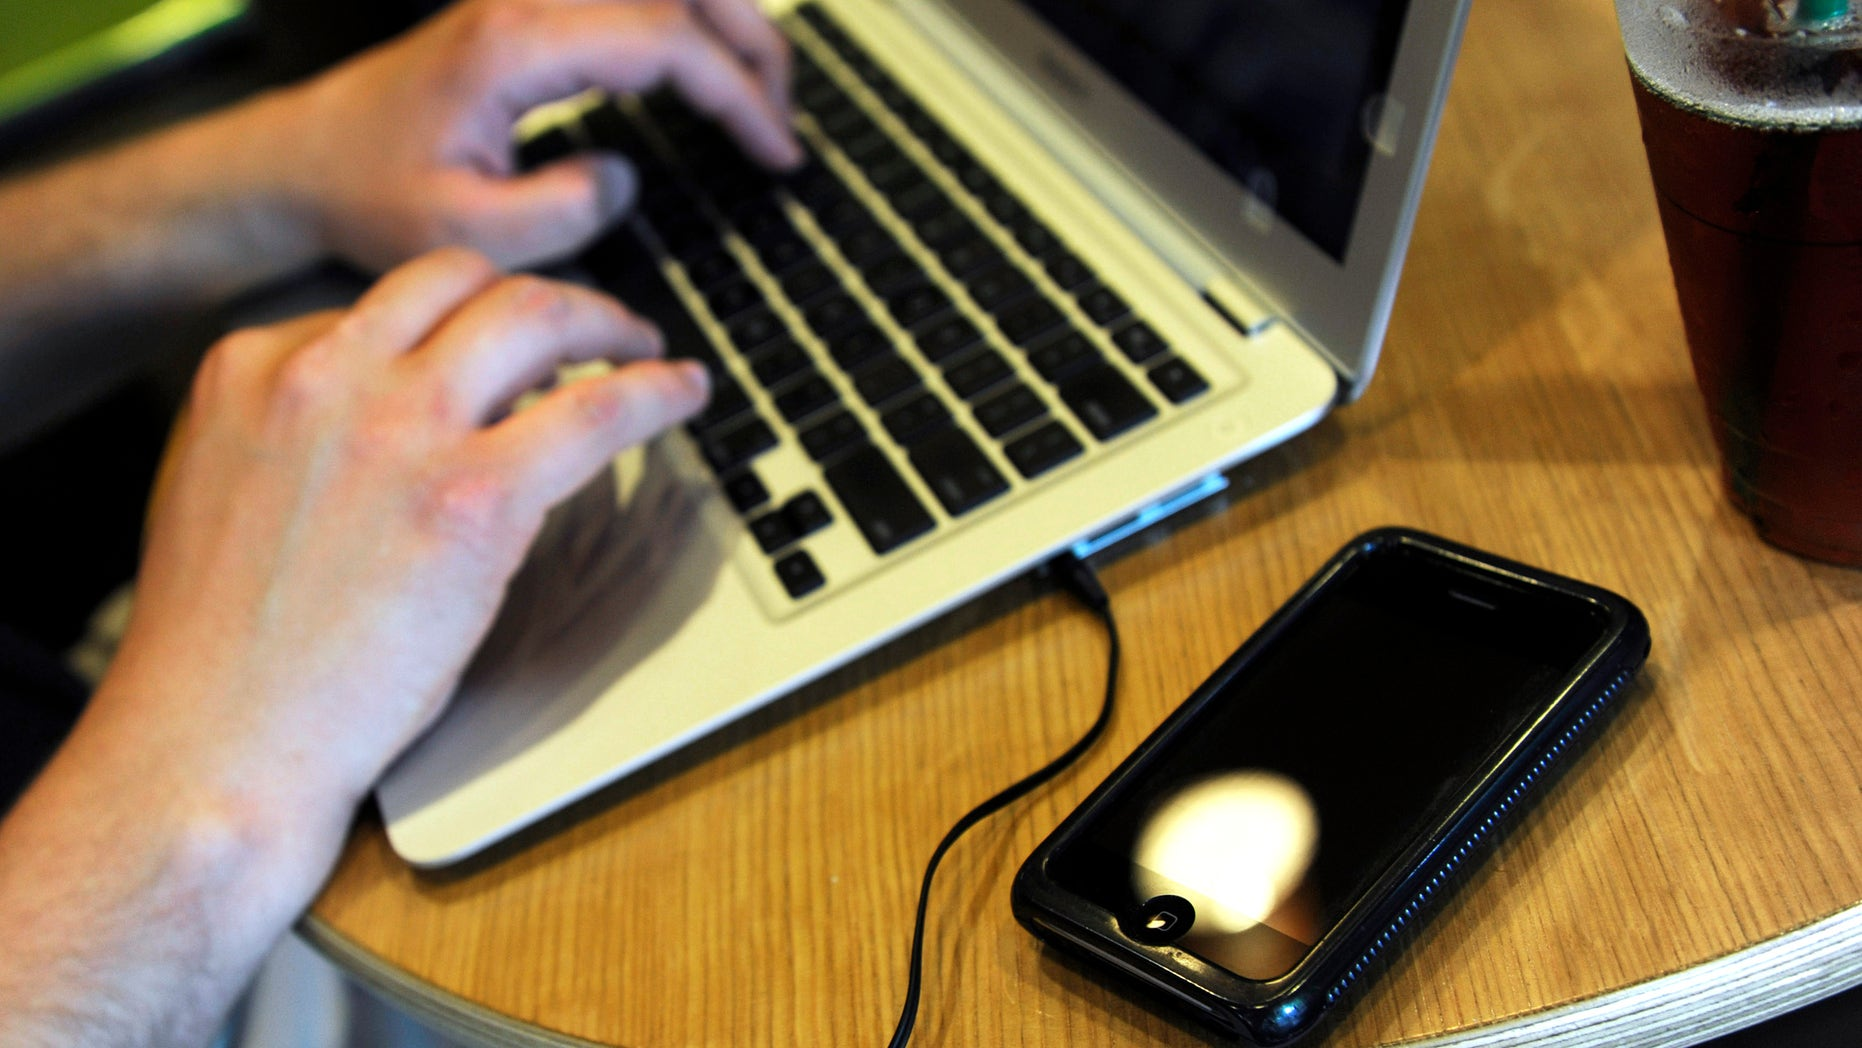 ** FOR USE MONDAY, DEC. 28 AND THEREAFTER ** FILE - In this May 13, 2009, file photo, Jonathan Hutcheson works on his laptop as his iPhone lays beside it at a coffee shop in Columbia, Mo. Wireless phone companies fear they're in danger of running out of room within the spectrum of wireless frequencies, so they want the government to give them bigger slices of airwaves _ even if other users have to give up rights to theirs. (AP Photo/L.G. Patterson, File)